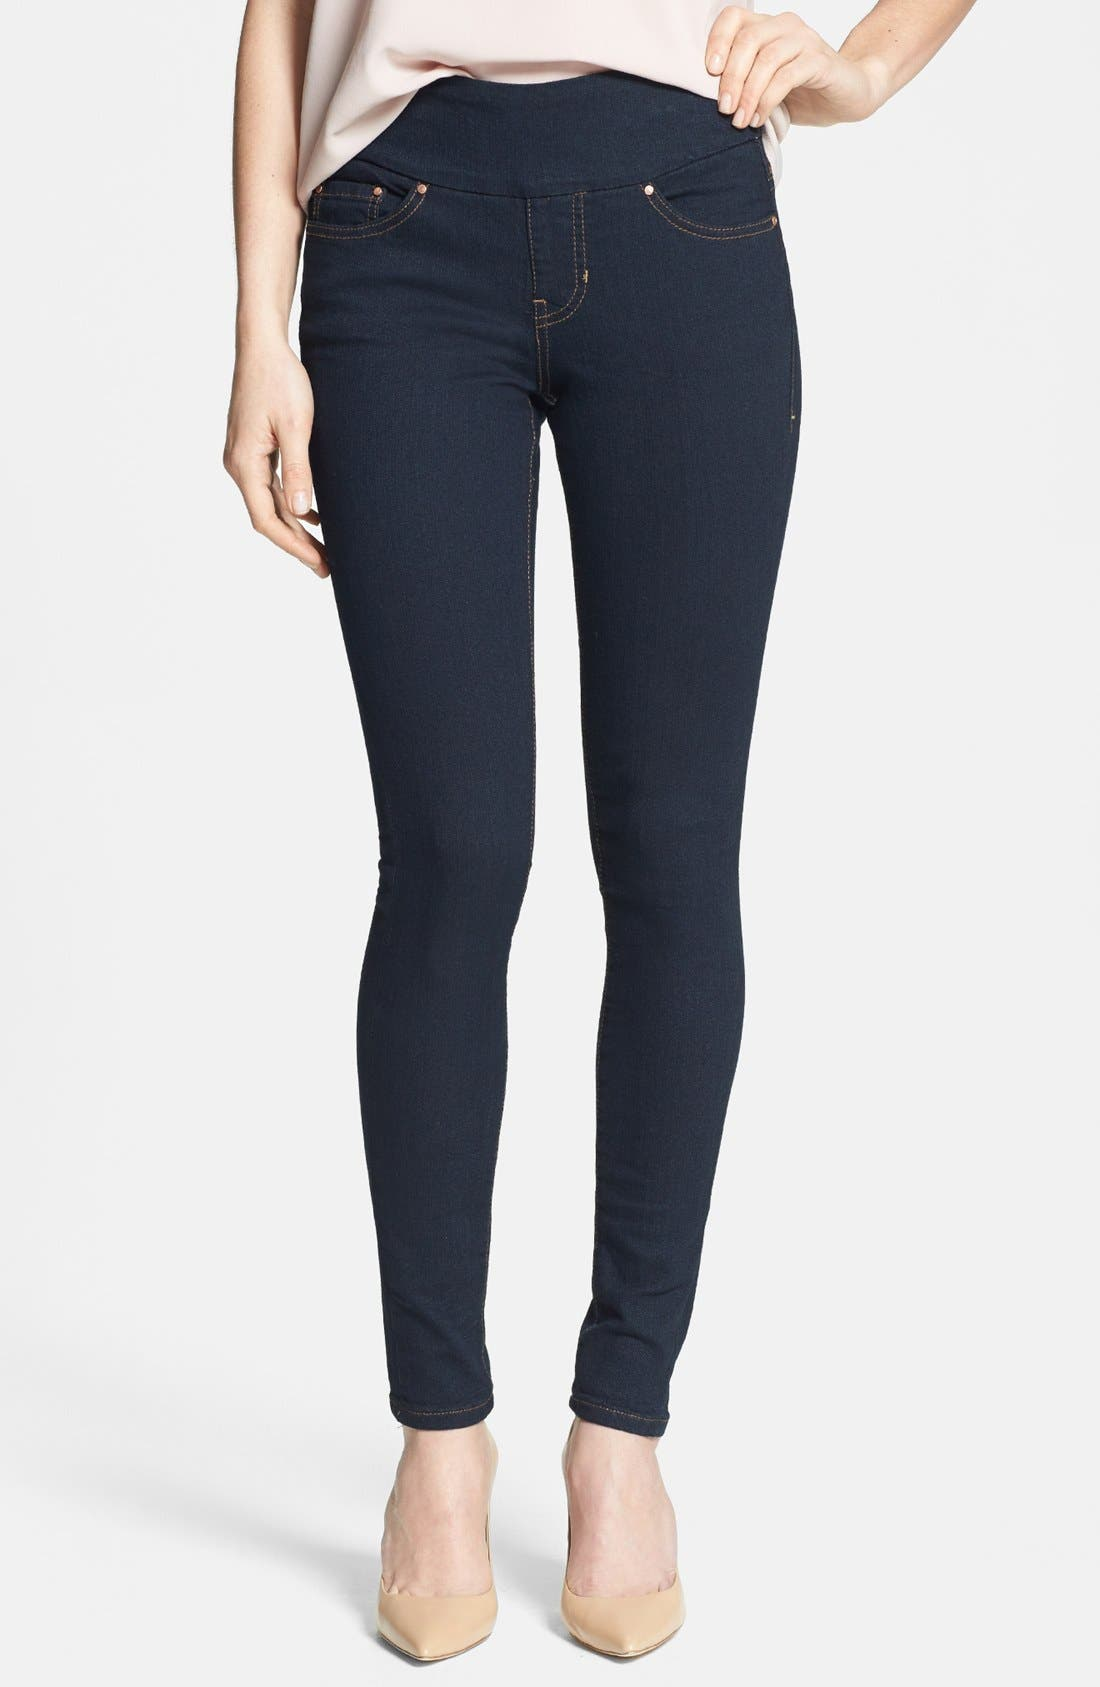 Alternate Image 1 Selected - Jag Jeans 'Nora' Pull-On Skinny Stretch Jeans (After Midnight) (Regular & Petite)